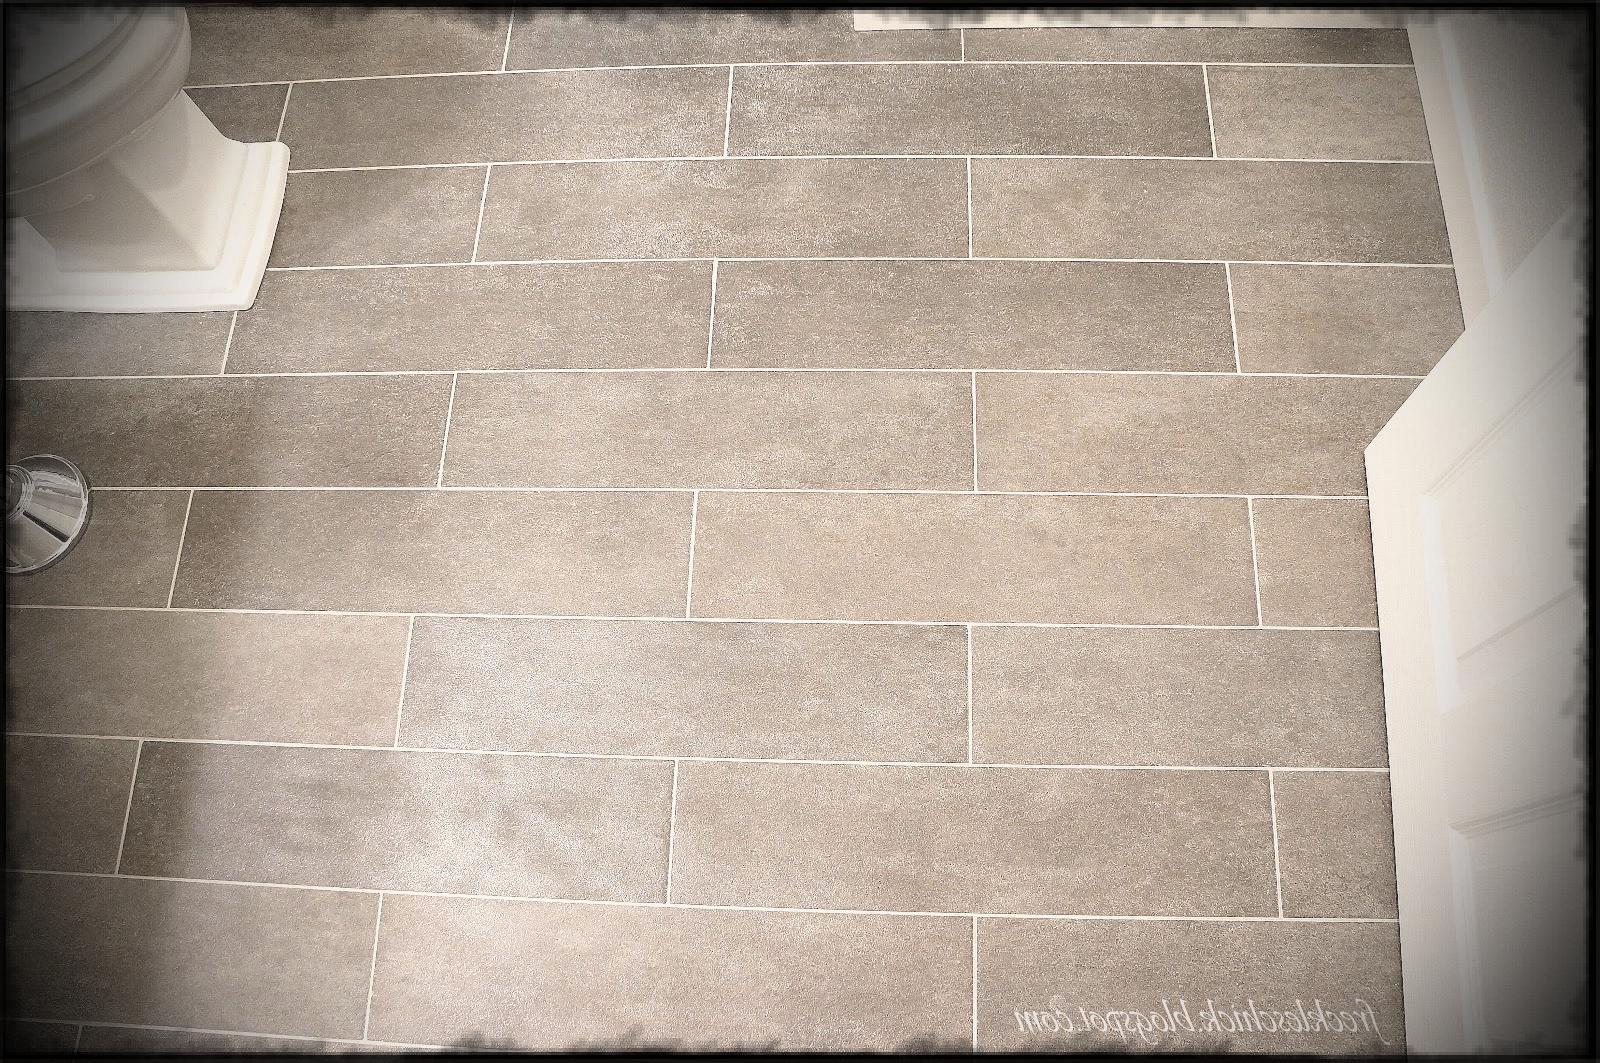 natural-stone-flooring-white-wall-paint-decoration-toilet-in-small-bathroom-tile-ideas-design-of-furnicool-collections-item